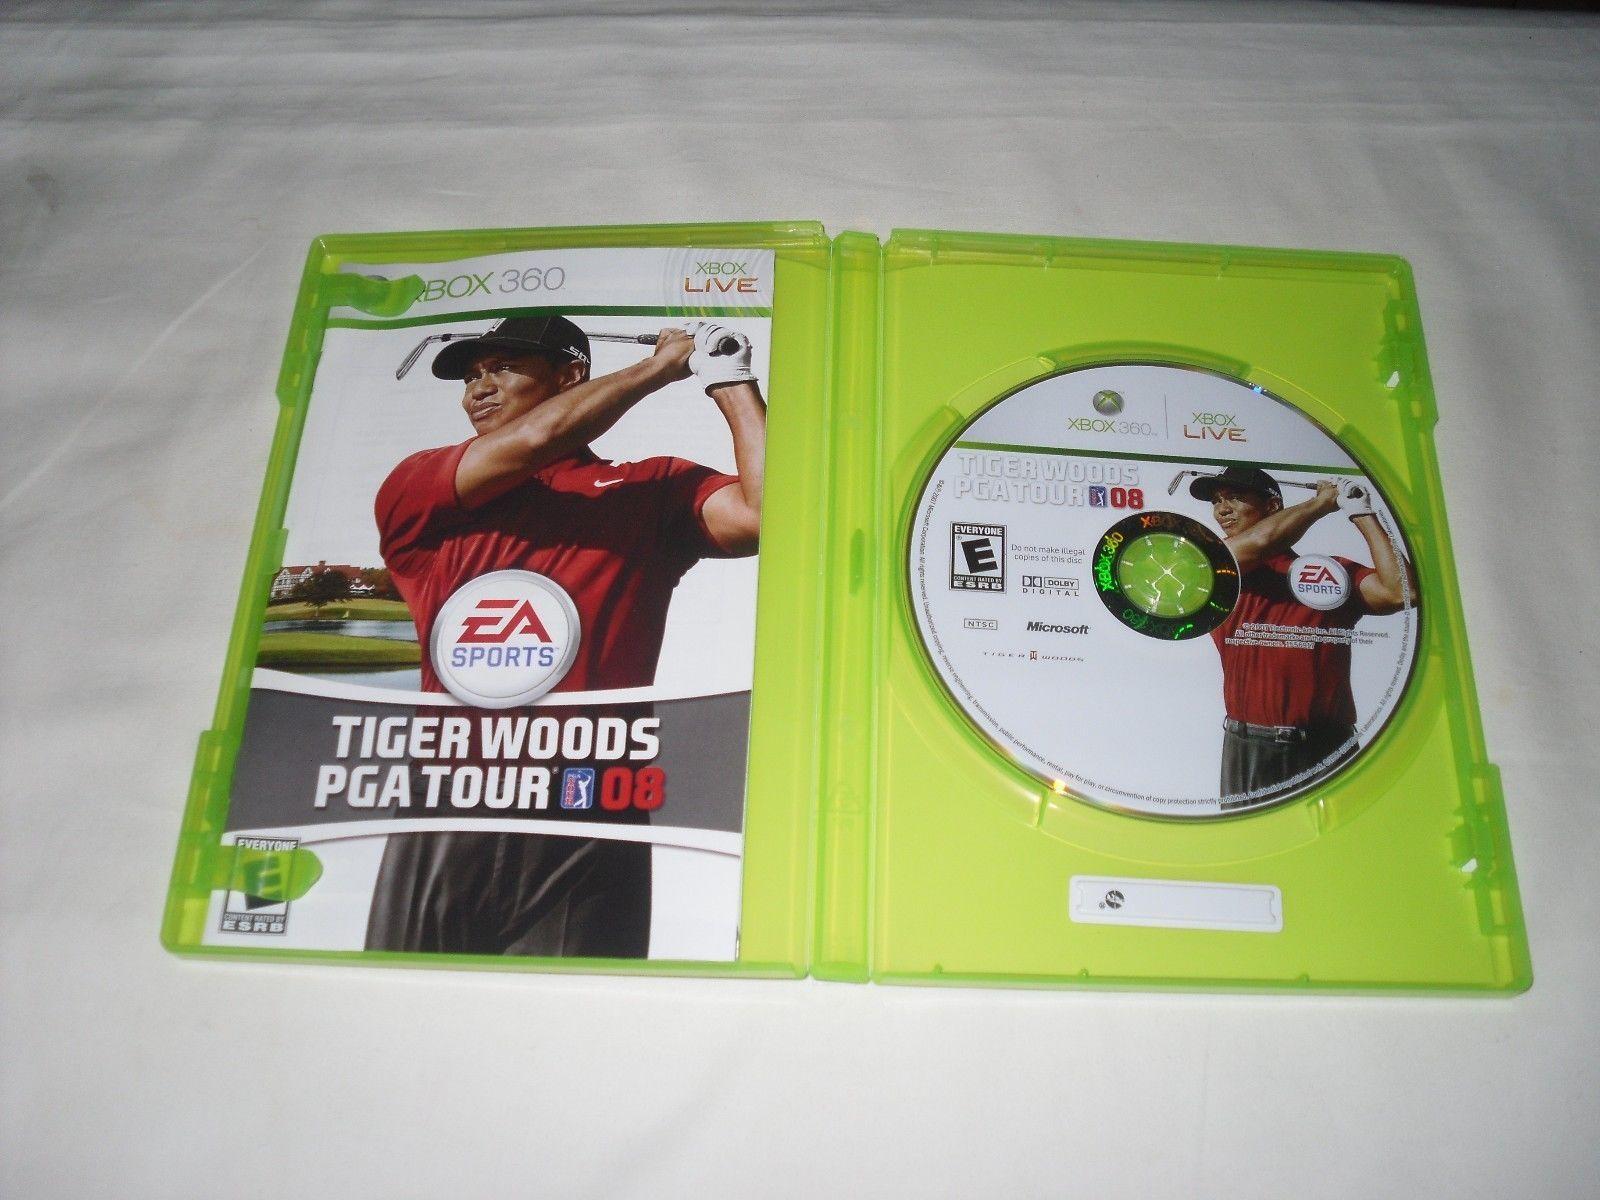 Tiger Woods PGA Tour 08 (Xbox 360, 2007) Complete Game